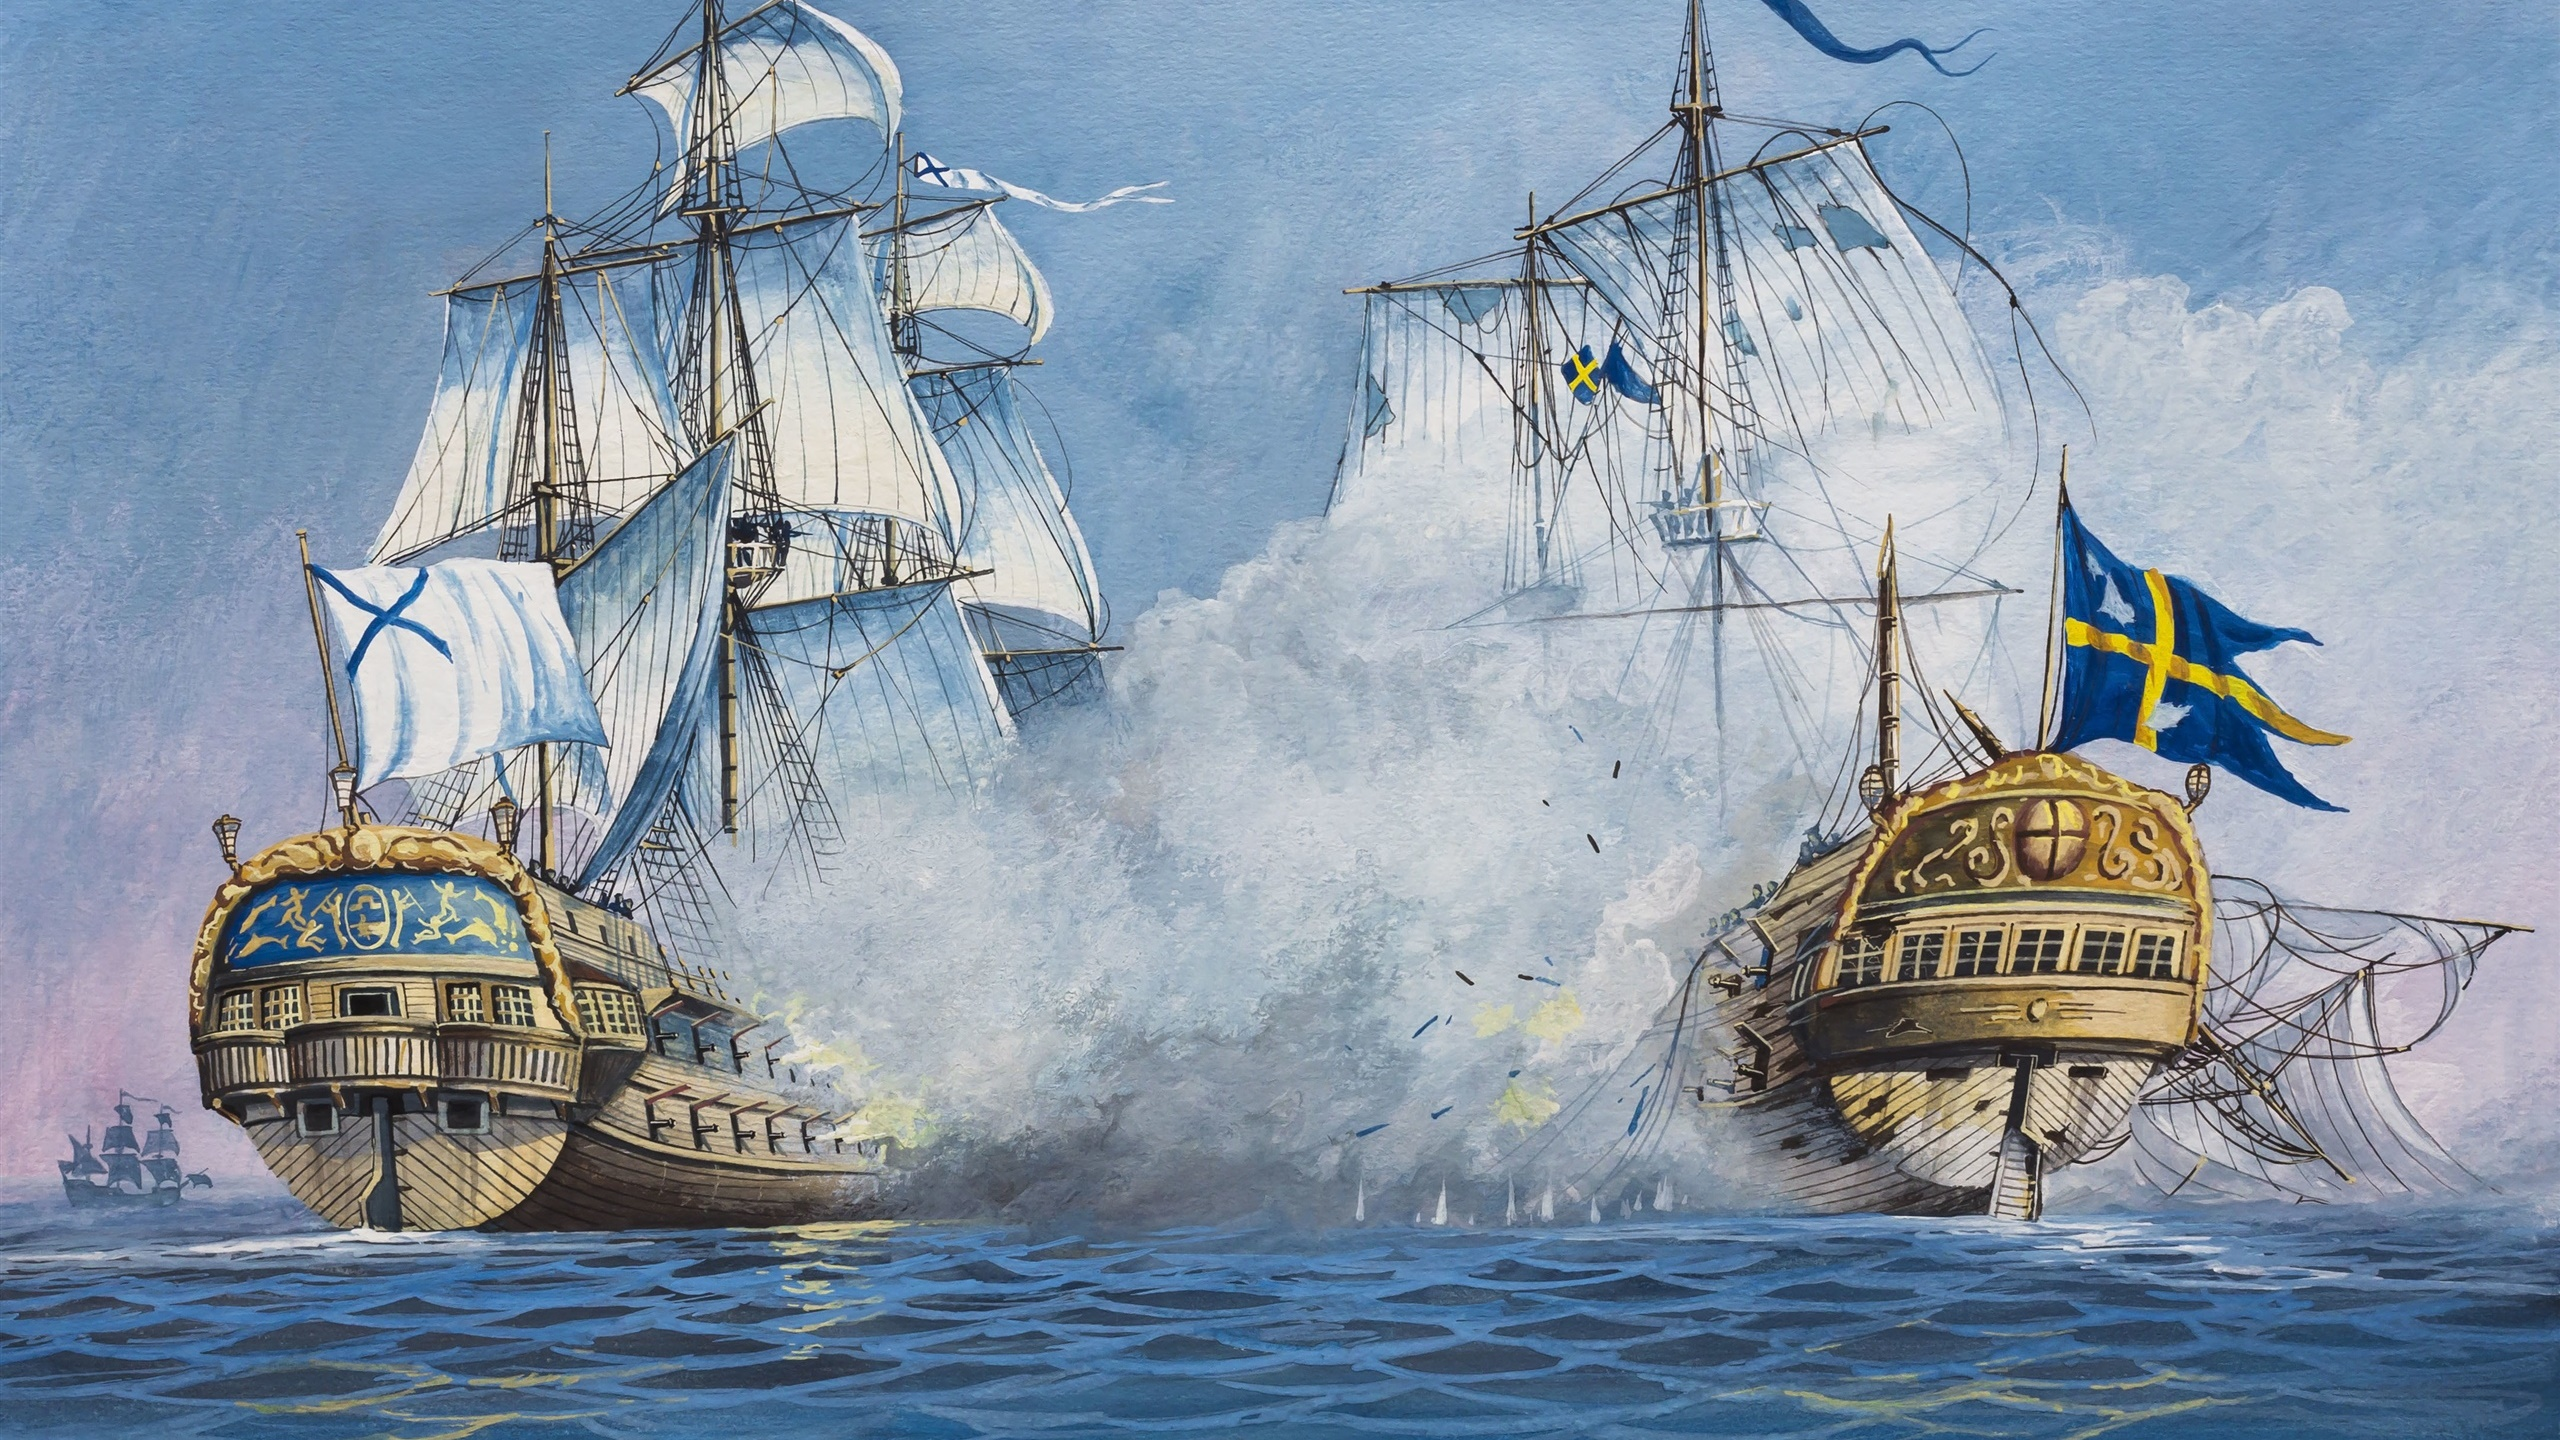 Art painting, sailing, ships, battle, sea 2560x1440 wallpaper